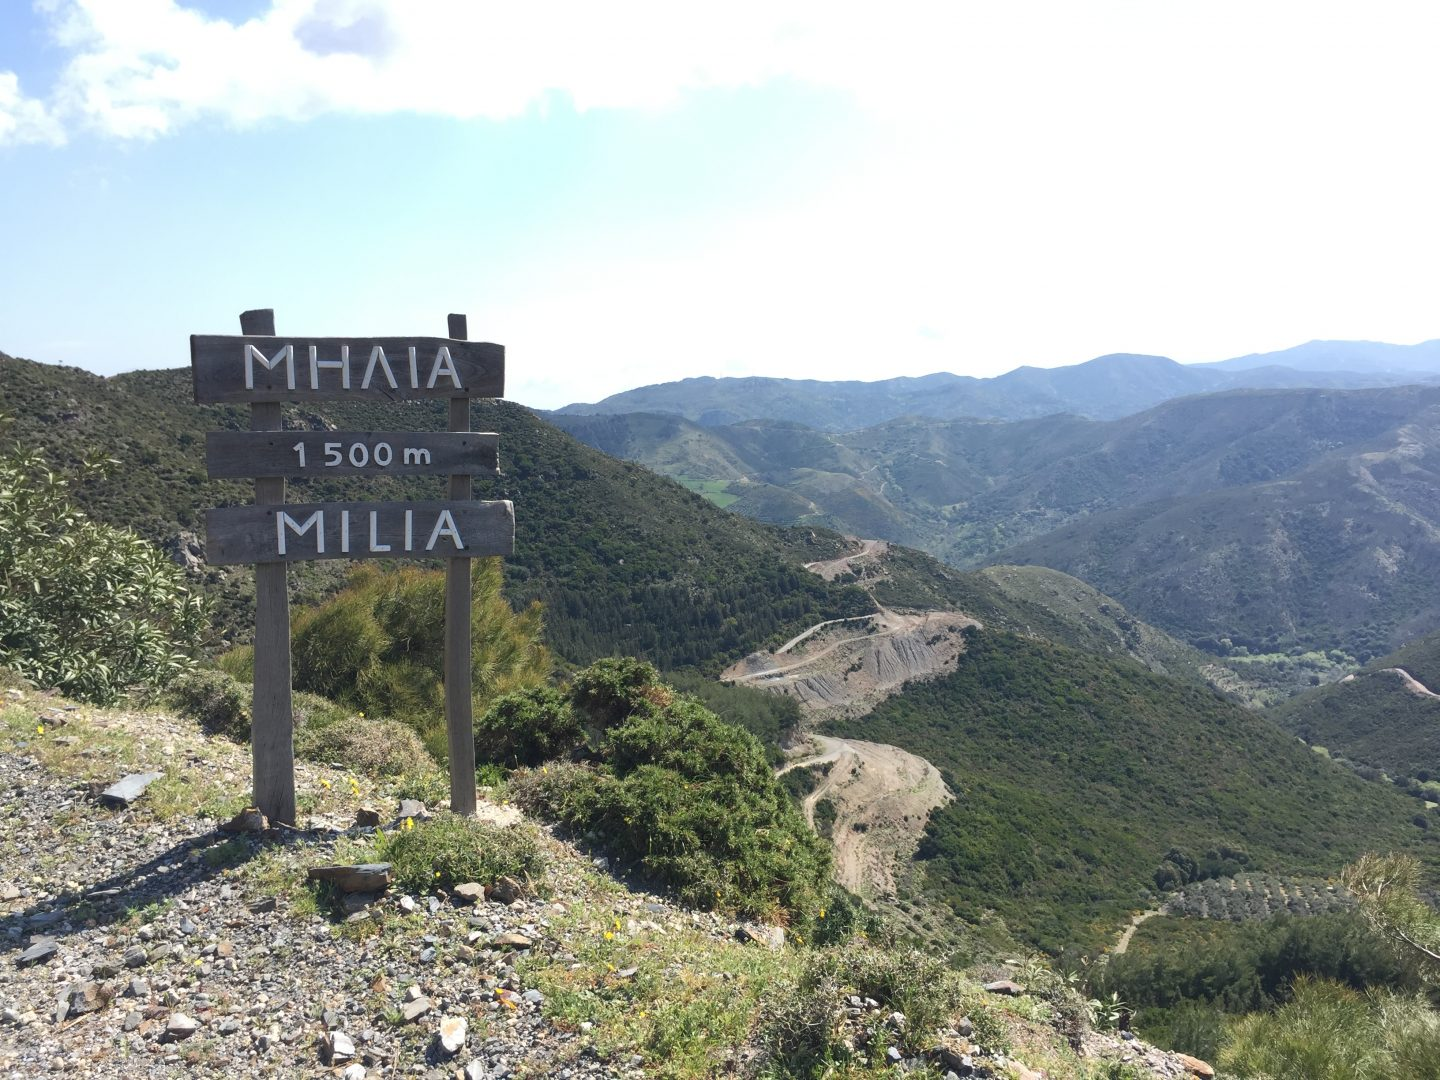 The road to Milia